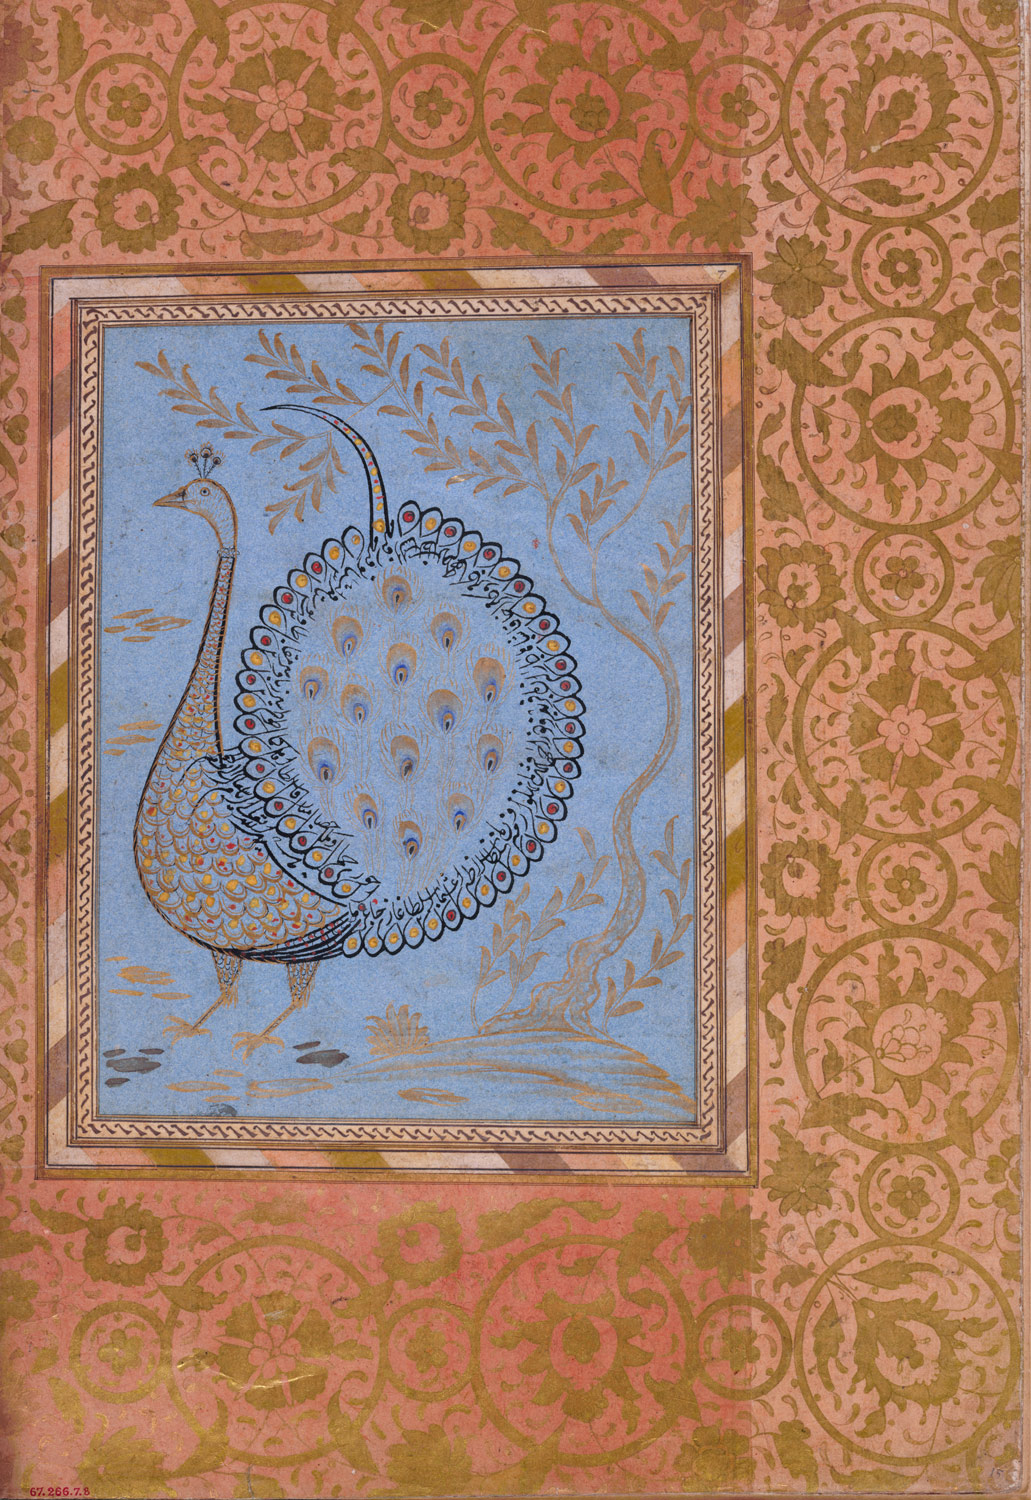 Calligraphic composition in the shape of a peacock: Folio from the Bellini Album